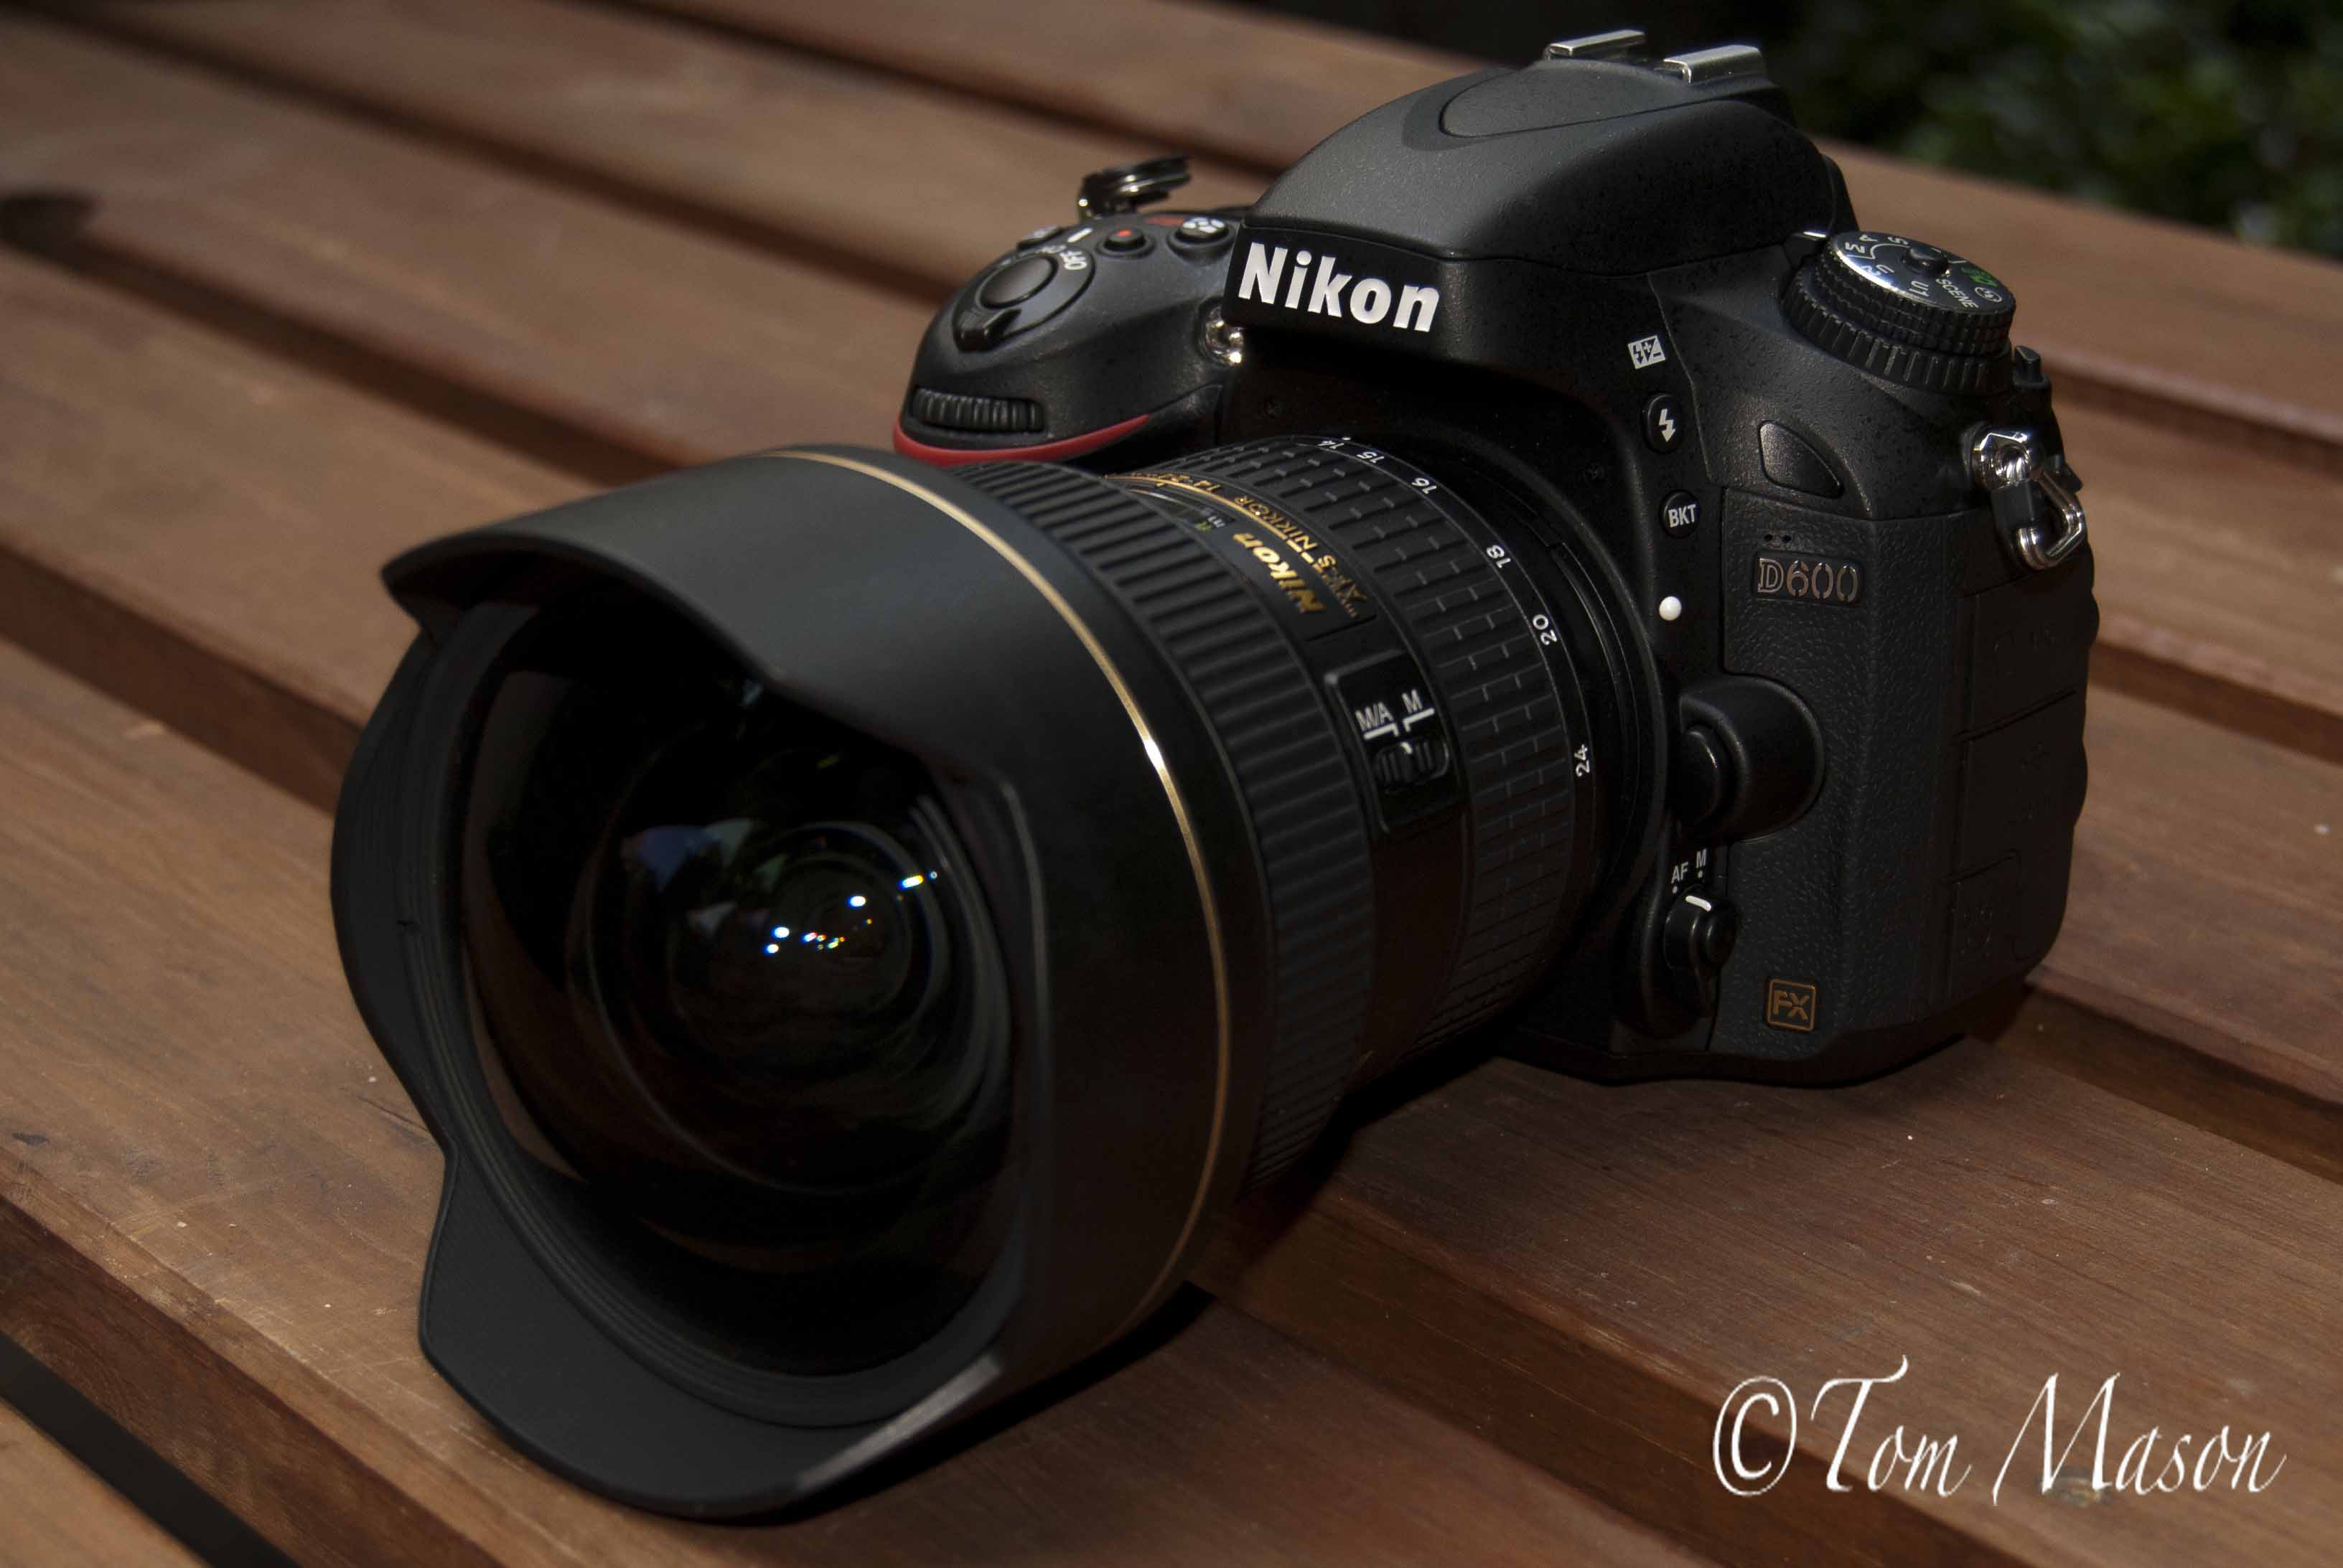 Hands On With The Nikon D600 Tom Mason Photography